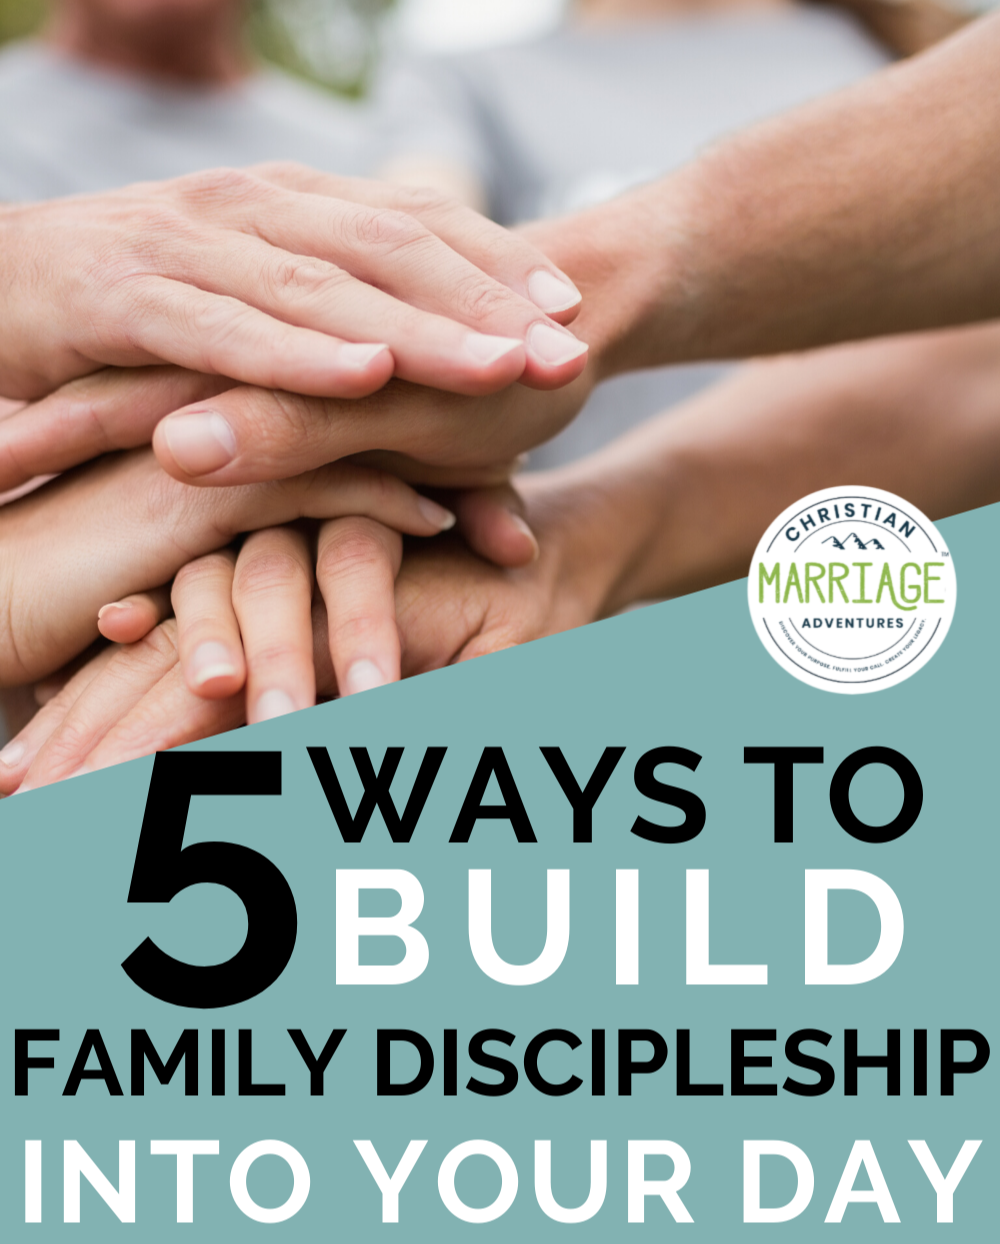 5 Ways to Build Family Discipleship into Your Day